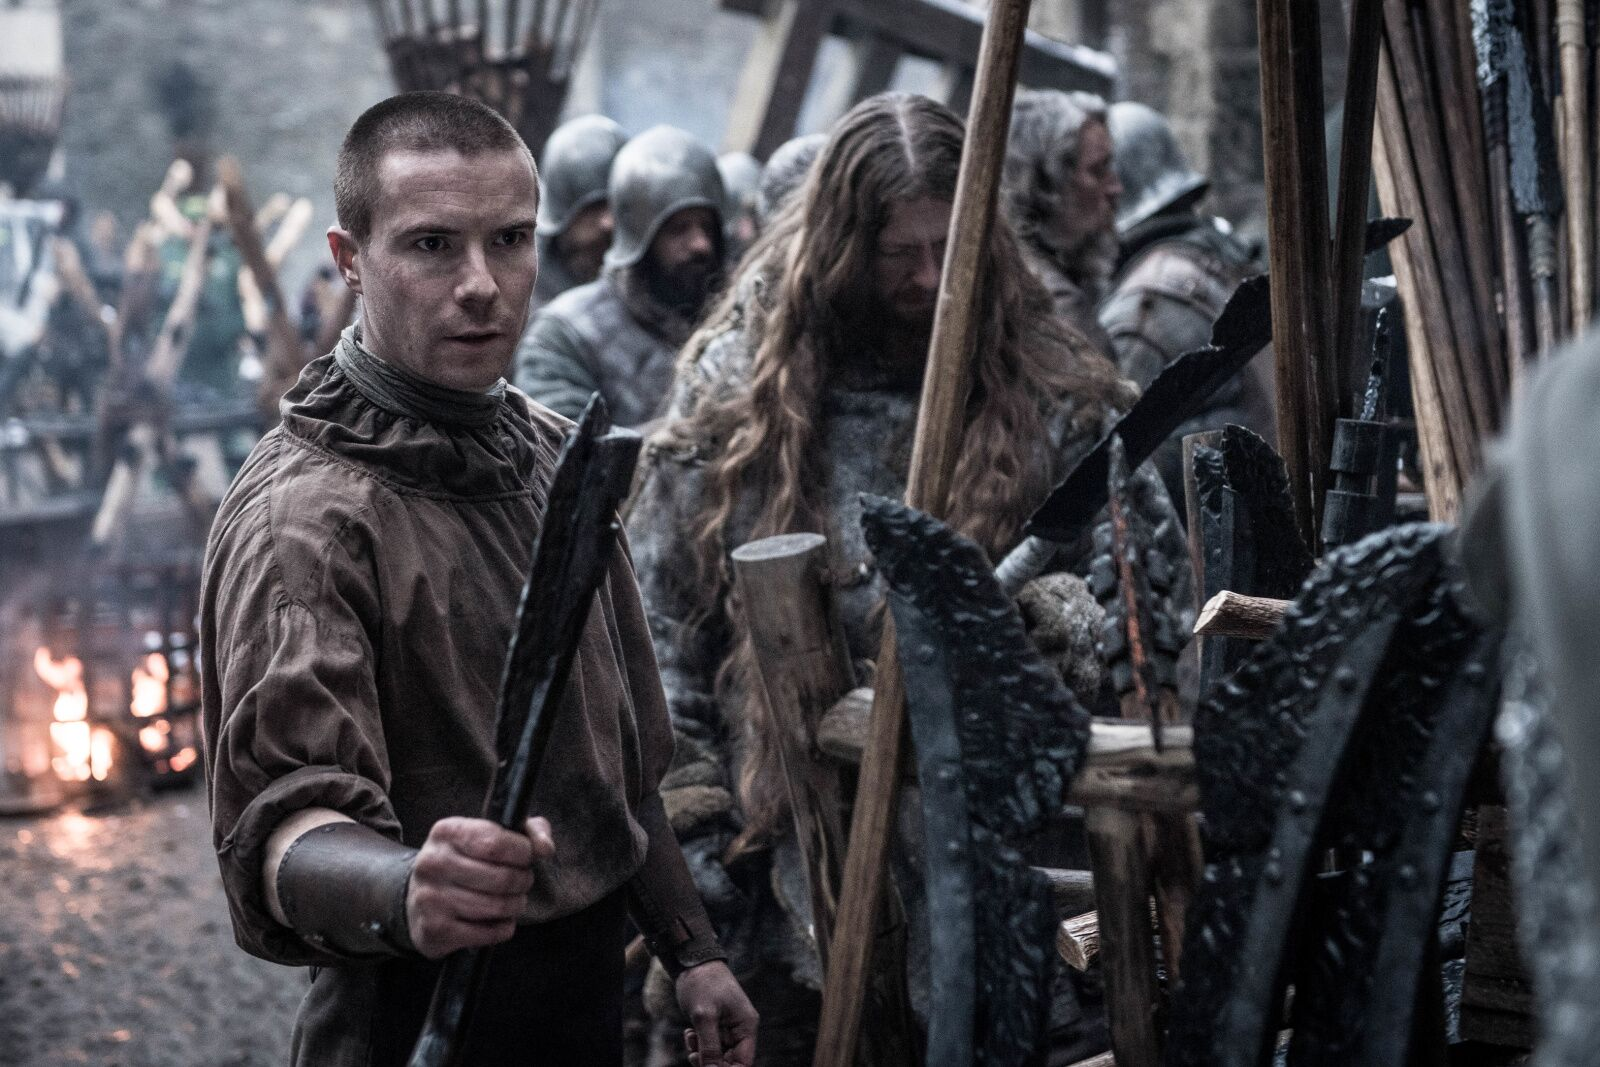 Joe Dempsie (Gendry) was expecting backlash over the Game of Thrones finale